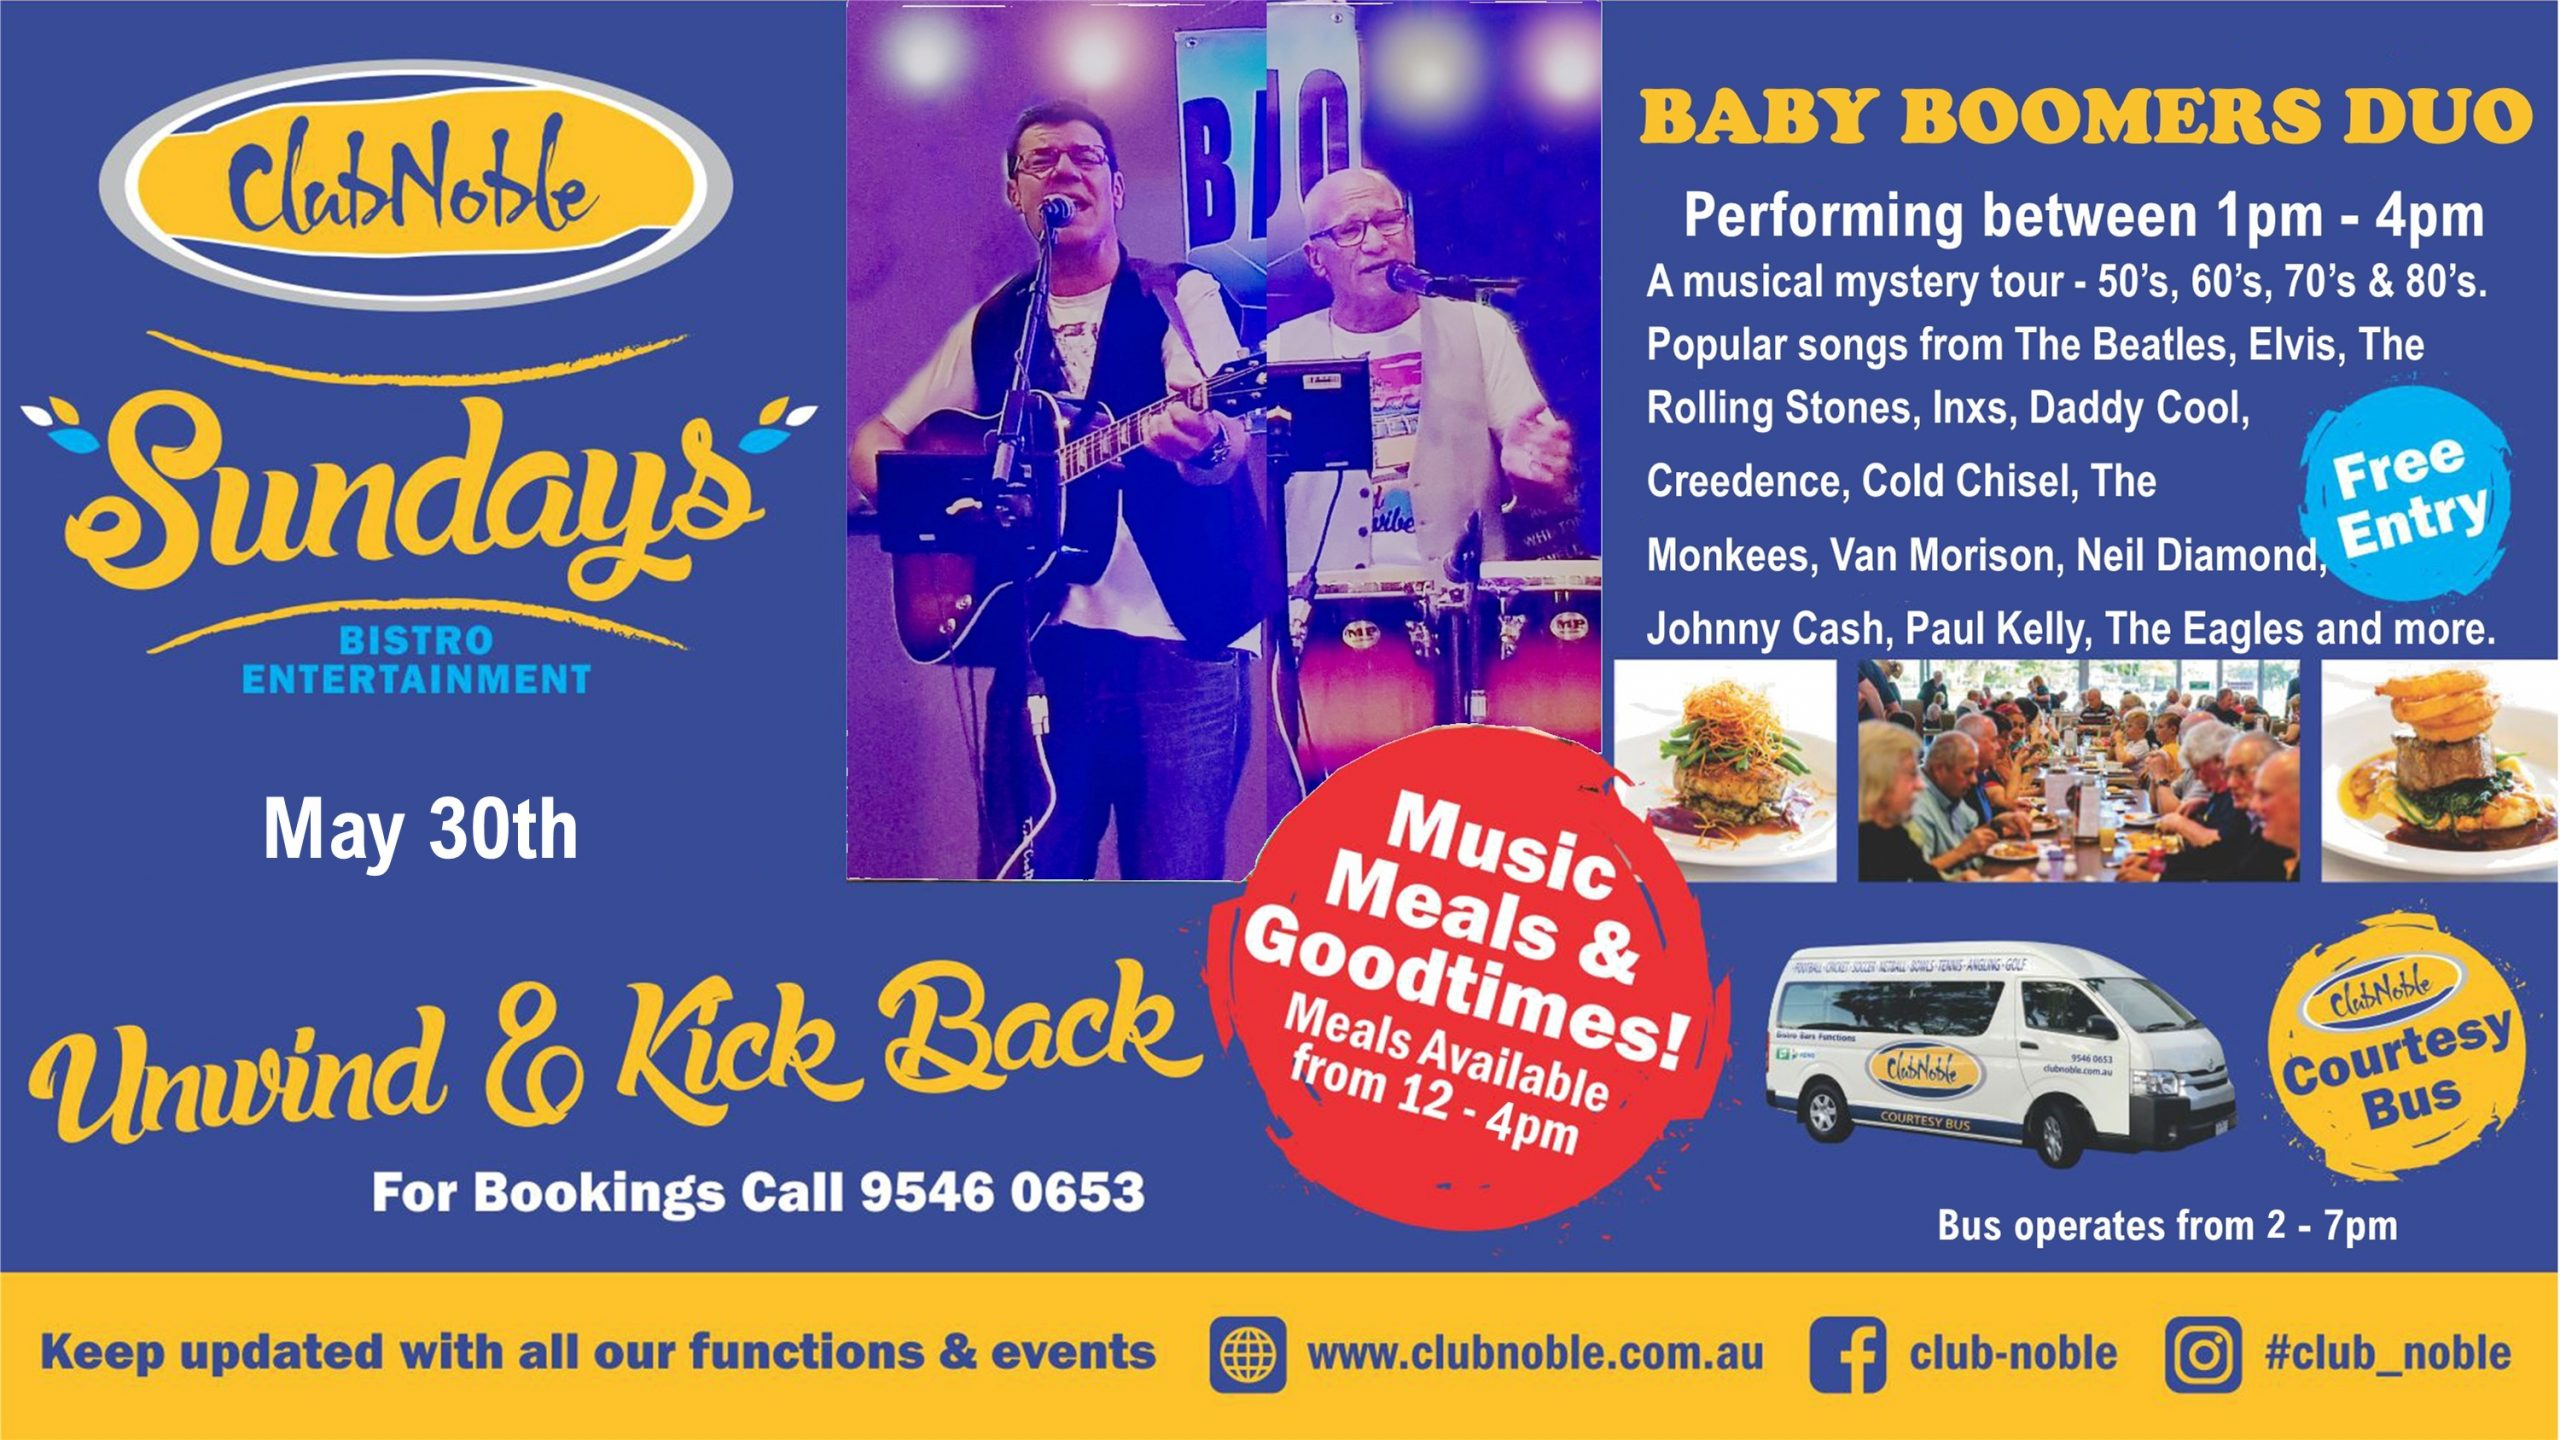 Baby Boomers – Sundays Live Entertainment